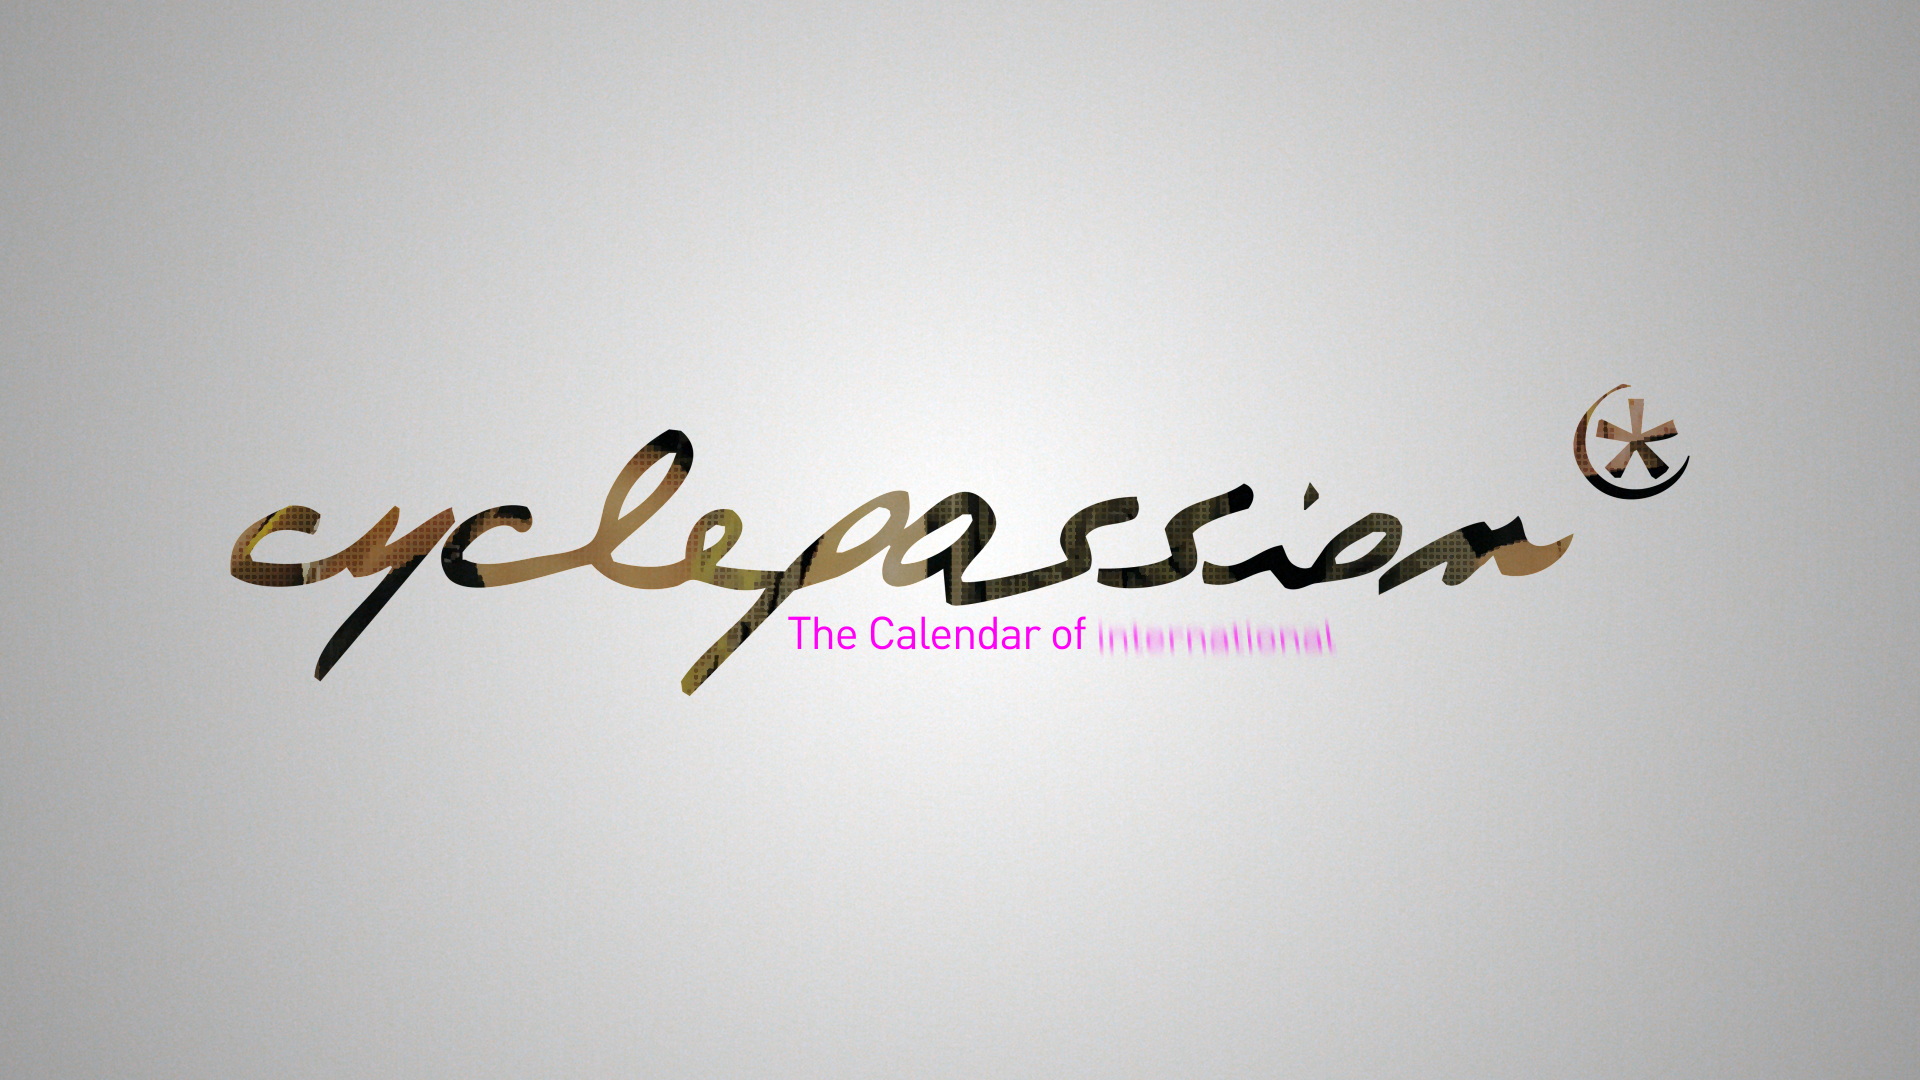 Cyclepassion_1920x1080_ID_2015 (0.00.08.10).png